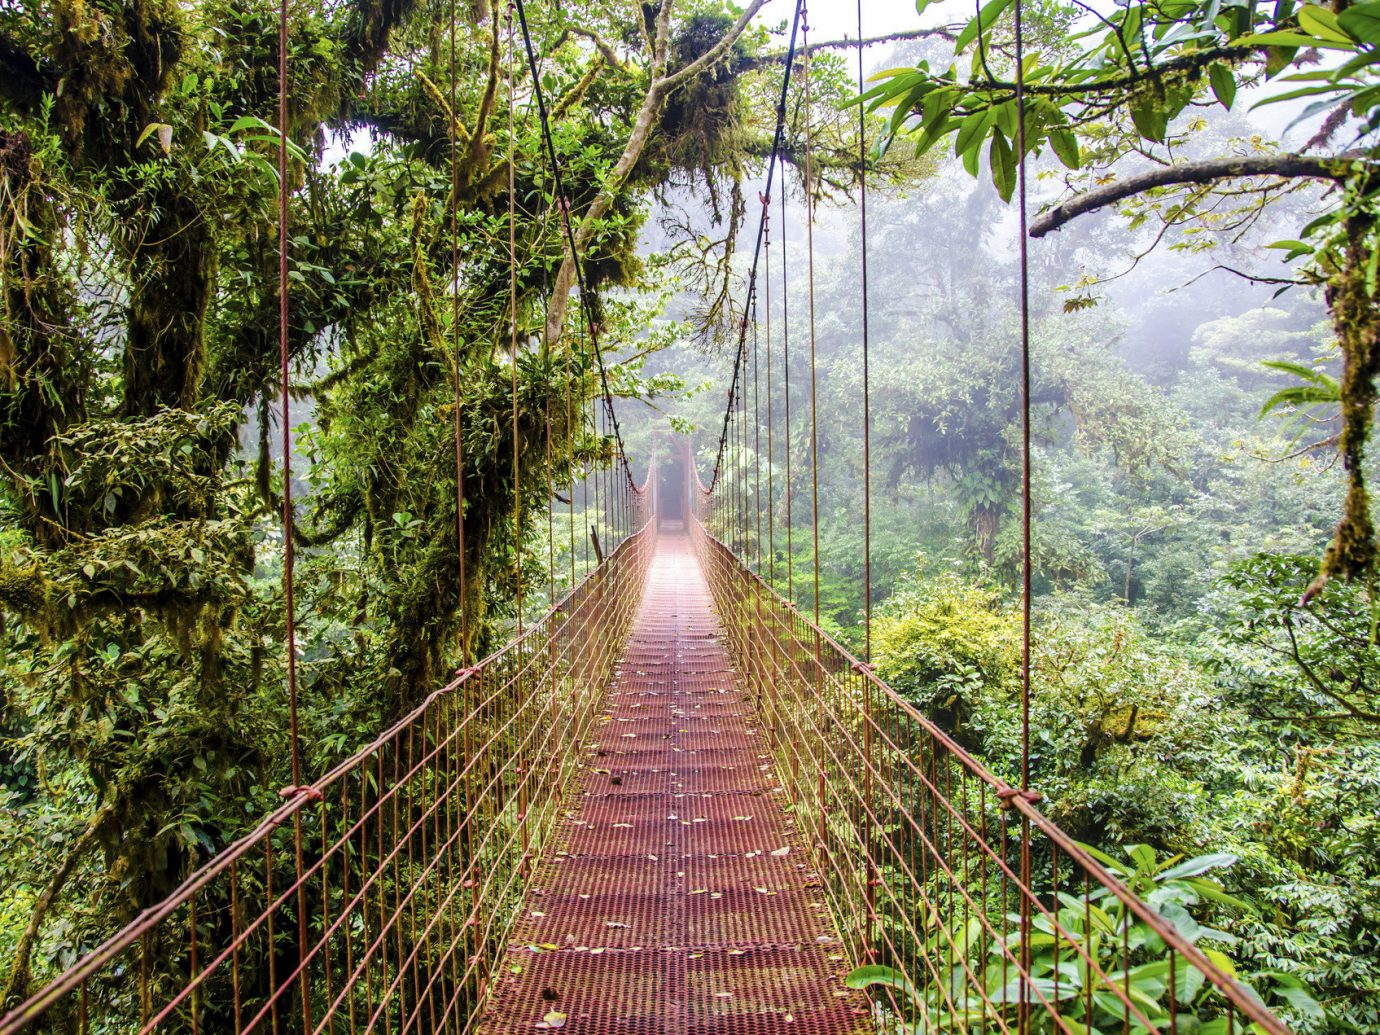 Trip Ideas tree habitat outdoor vegetation building Nature bridge rainforest natural environment Forest wilderness ecosystem old growth forest botany Jungle woodland wetland wooded